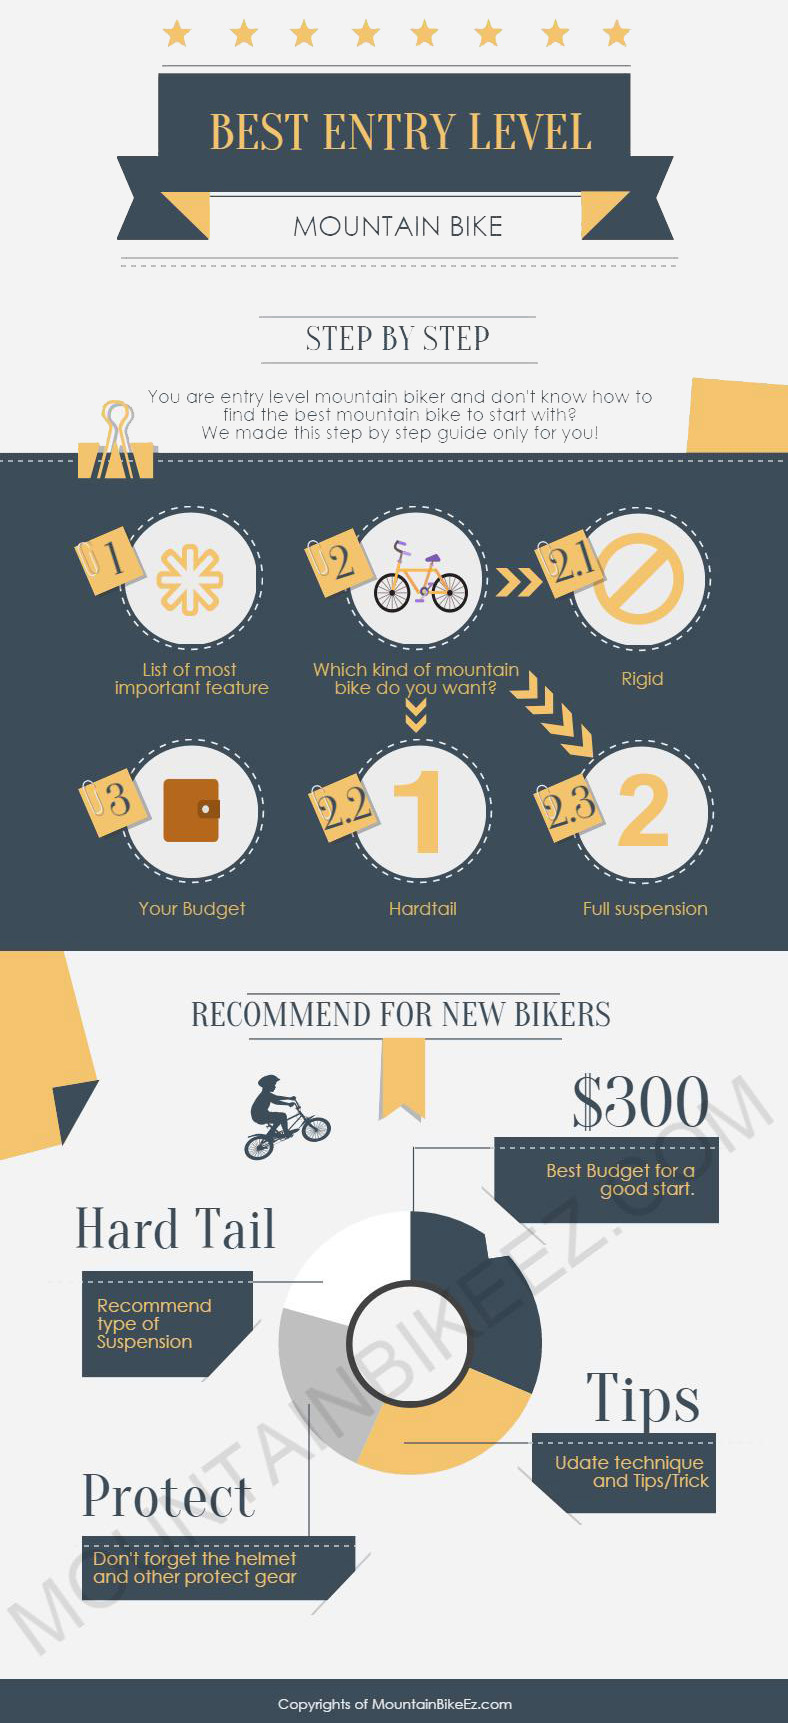 best-entry-level-mountain-bike-infographic